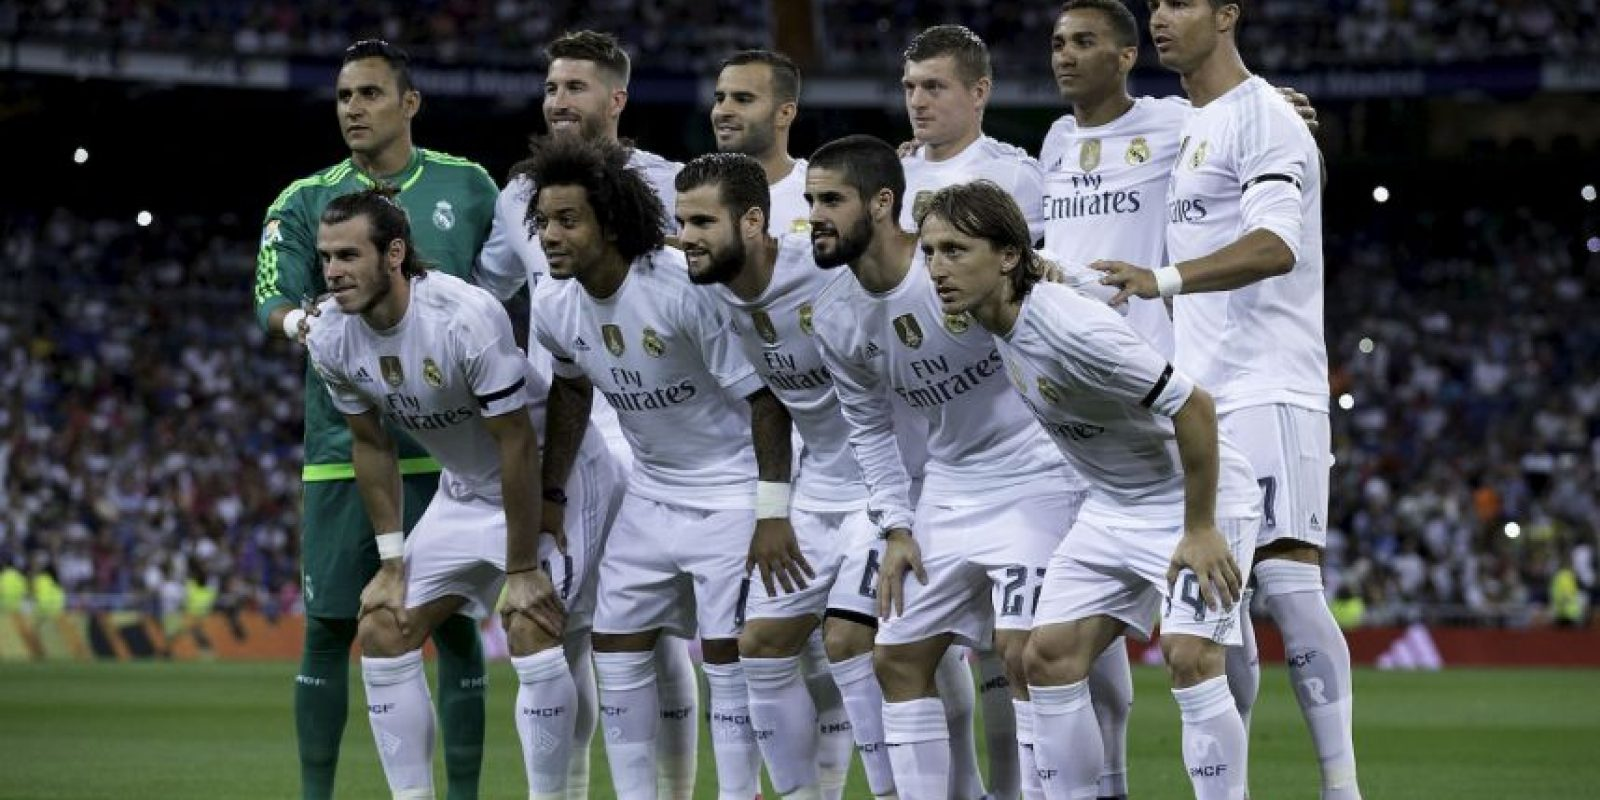 Real Madrid (Subcampeón en 2014/2015) Foto: Getty Images